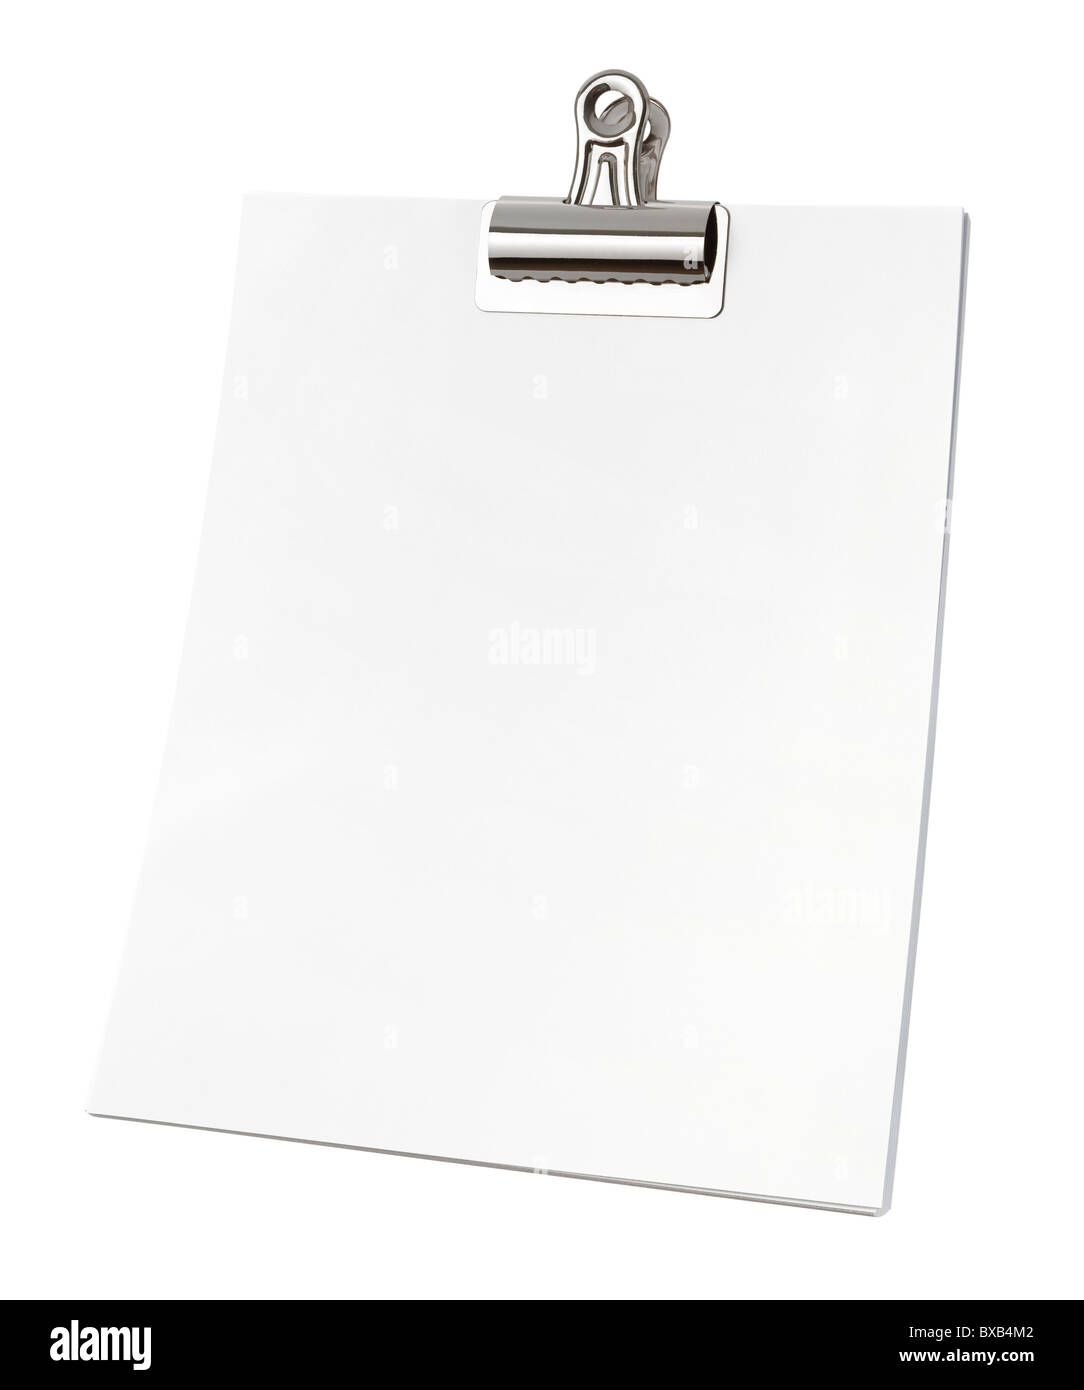 Bull Clip & Paper isolated on a white background. - Stock Image